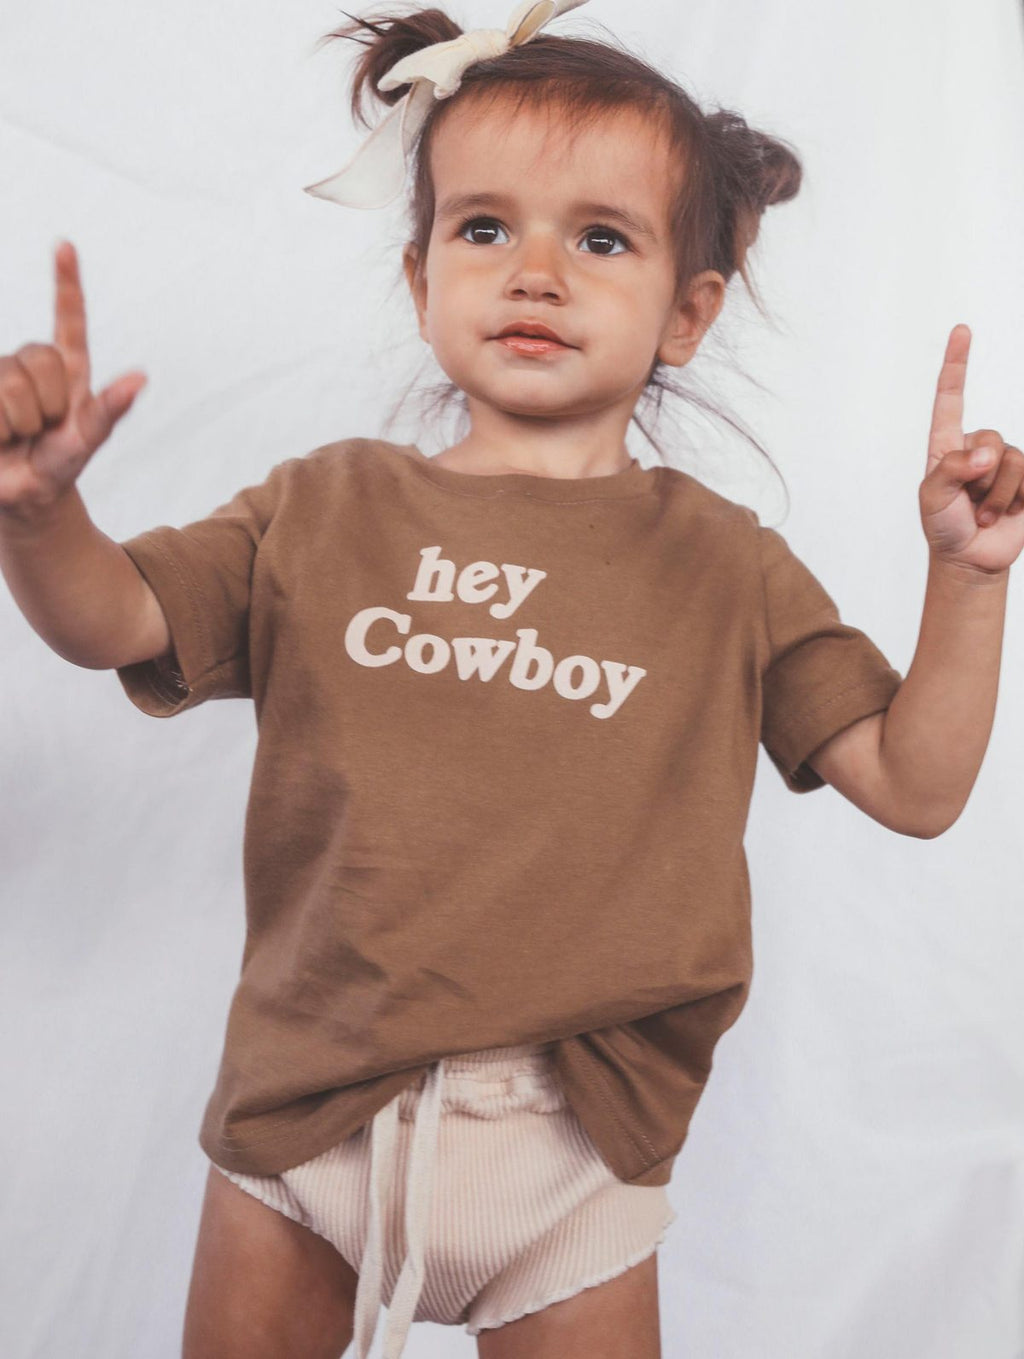 Hey Cowboy Toddler Tee